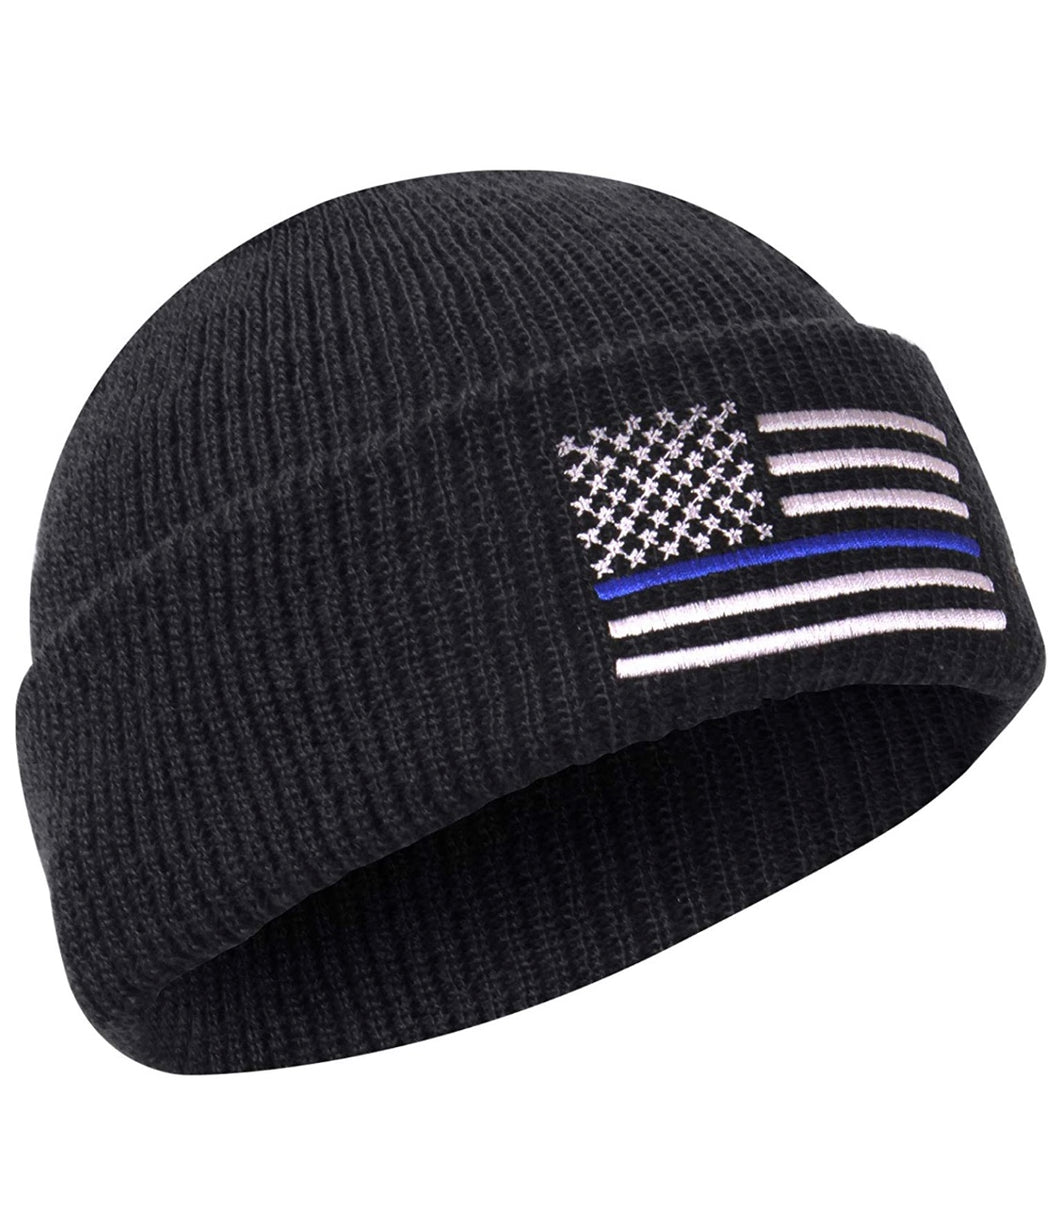 Thin Blue Line Deluxe Embroidered Watch Cap Black with Grey and Blue Flag, One Size Fits All Support Police Officers Cap